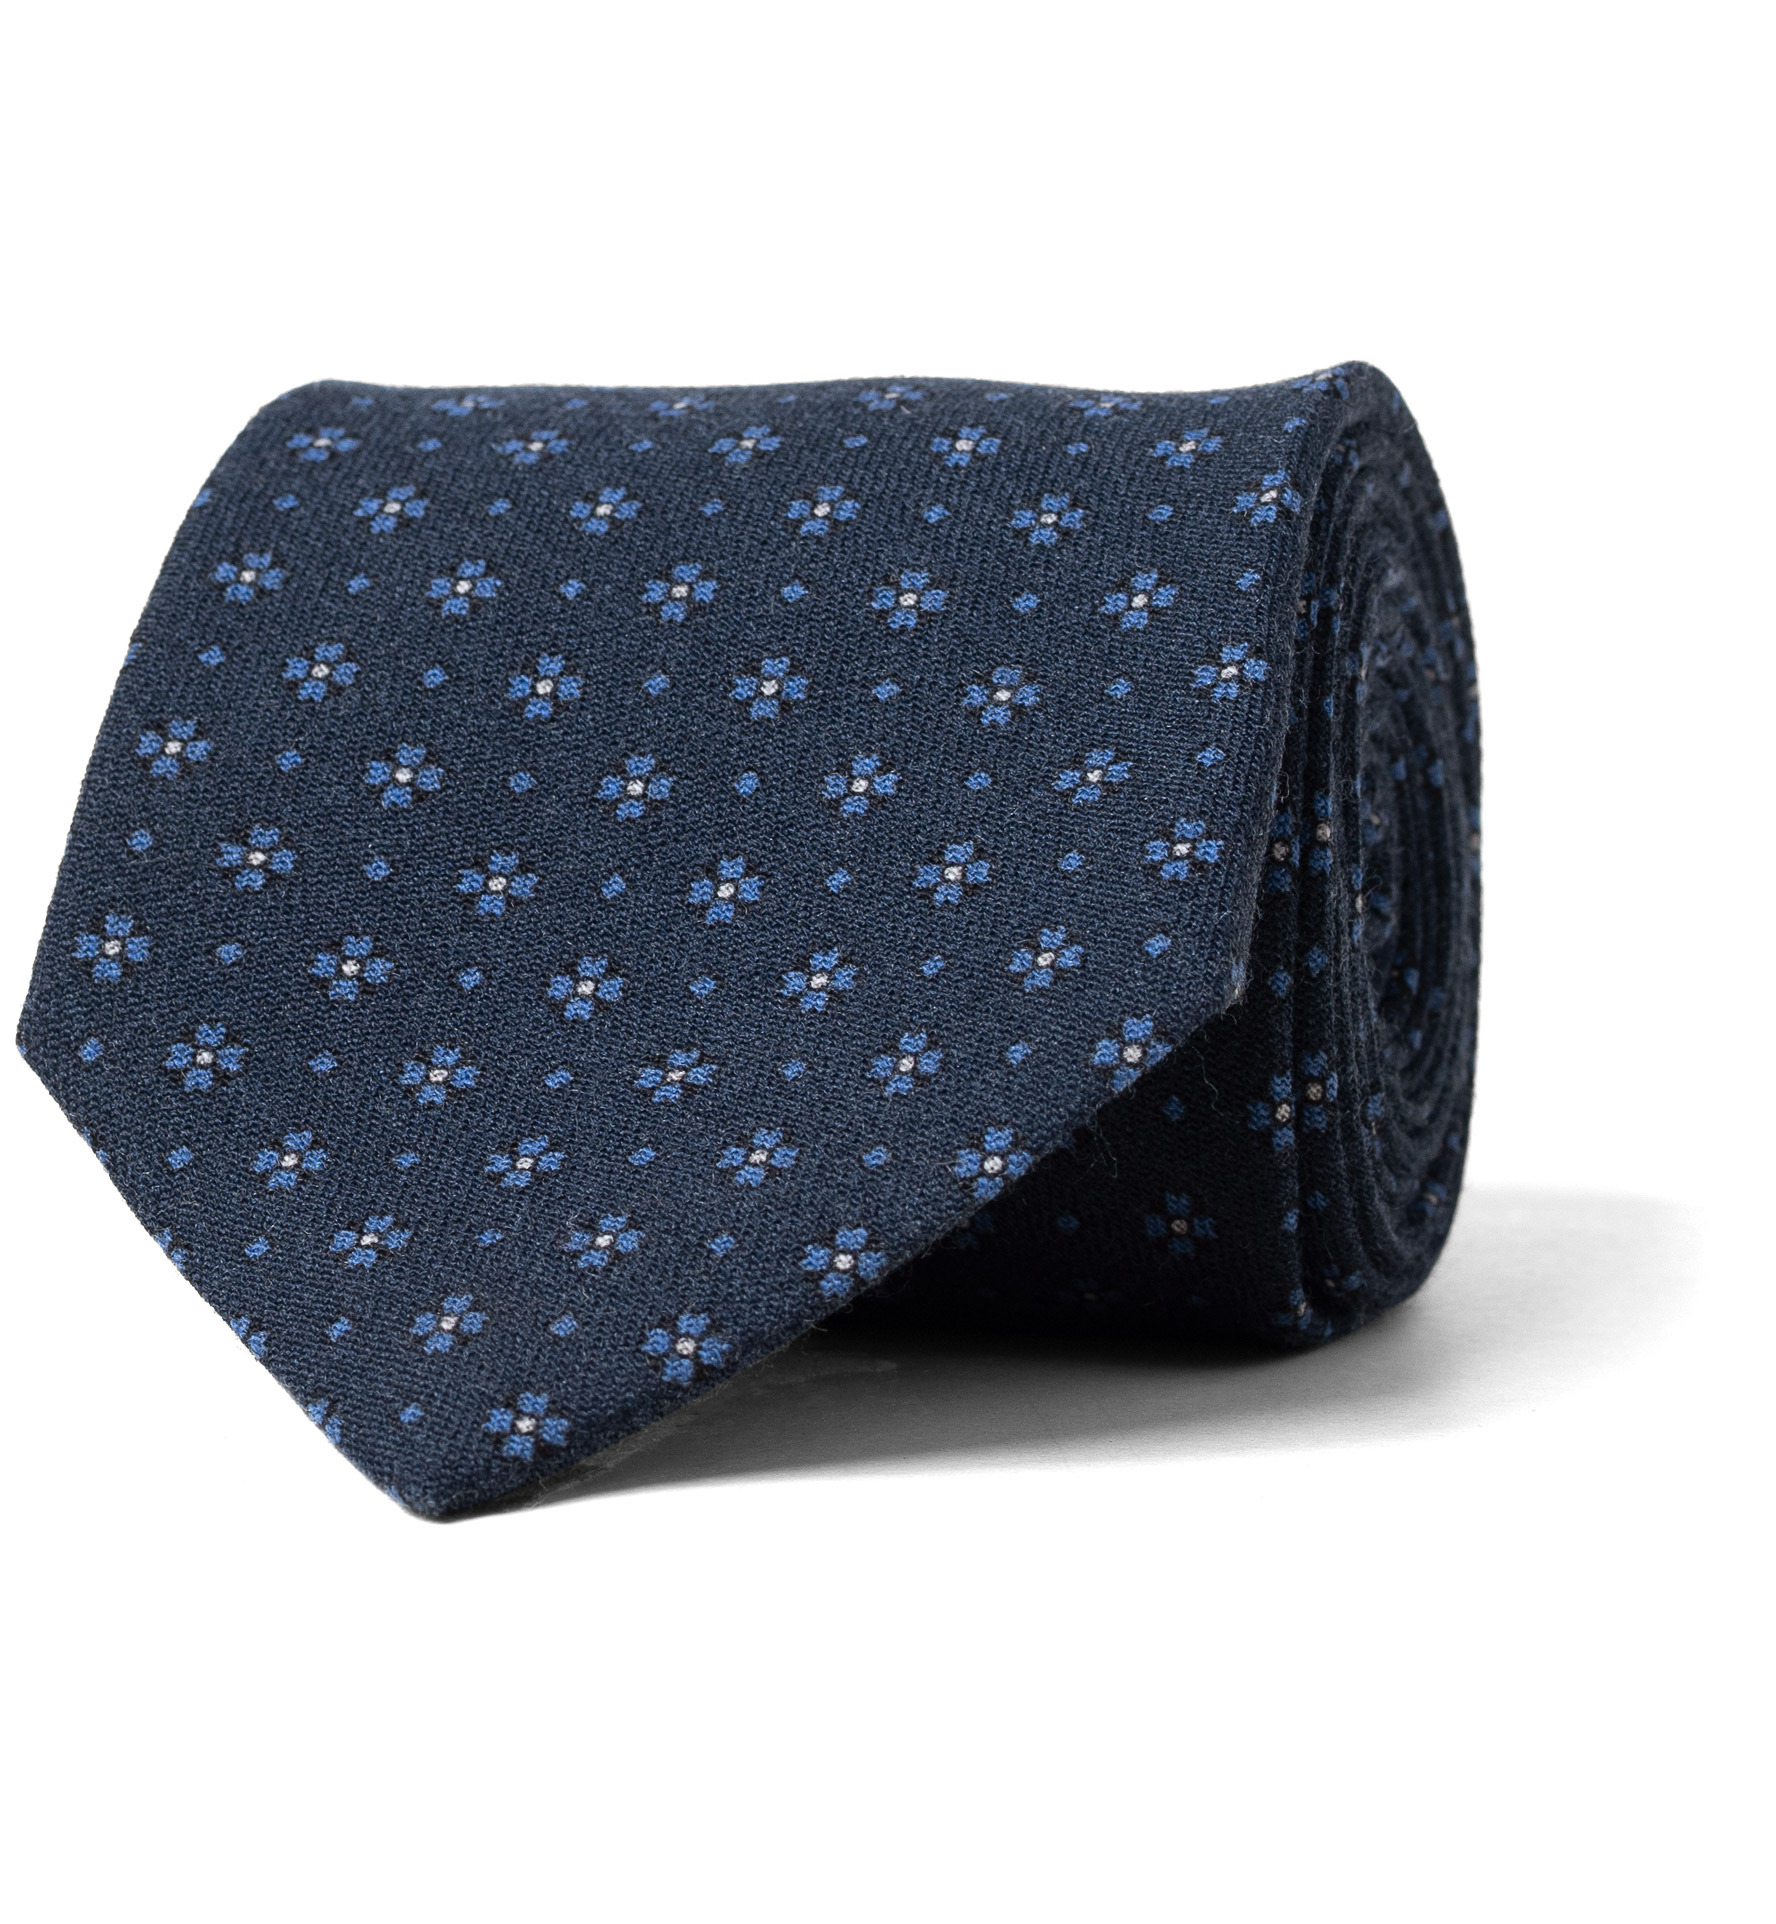 Zoom Image of Navy Foulard Wool Tie